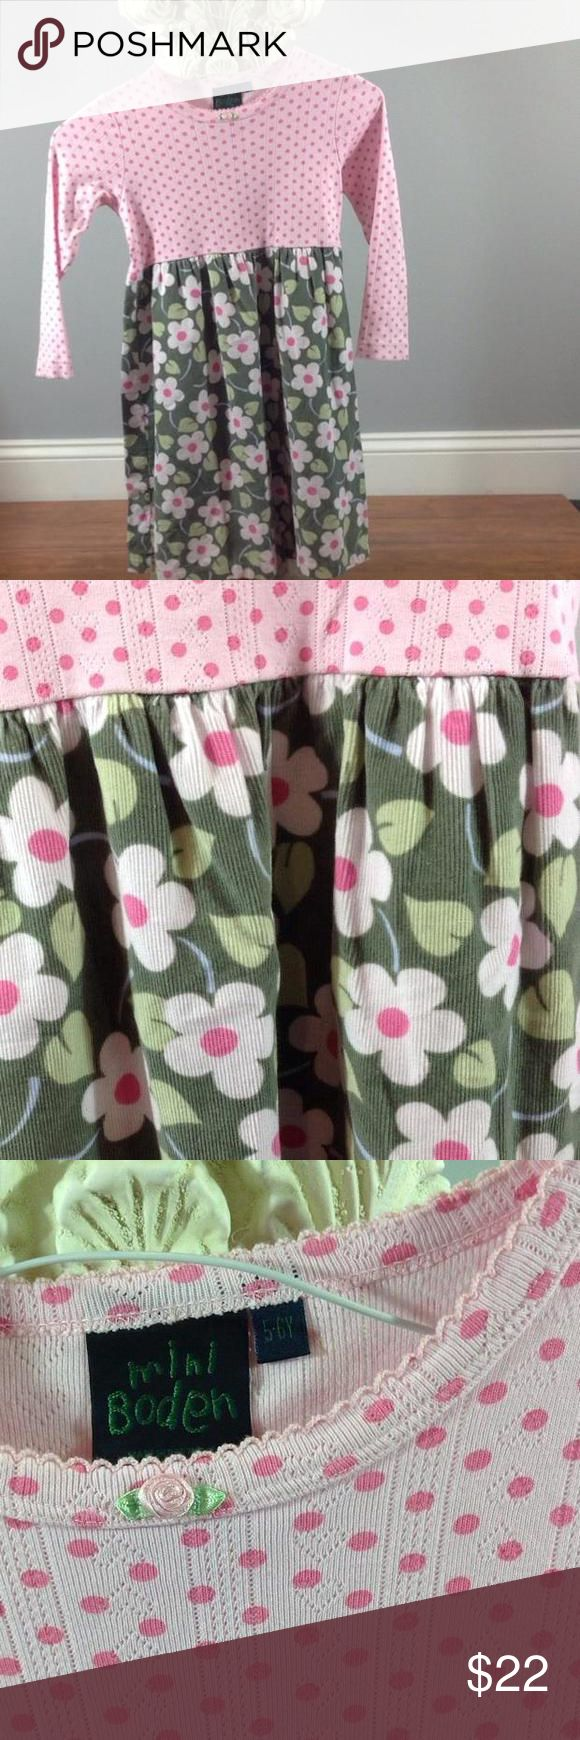 Mini Boden dress 5-6y Like new pink polka dot and green floral dress. Mini Boden Dresses